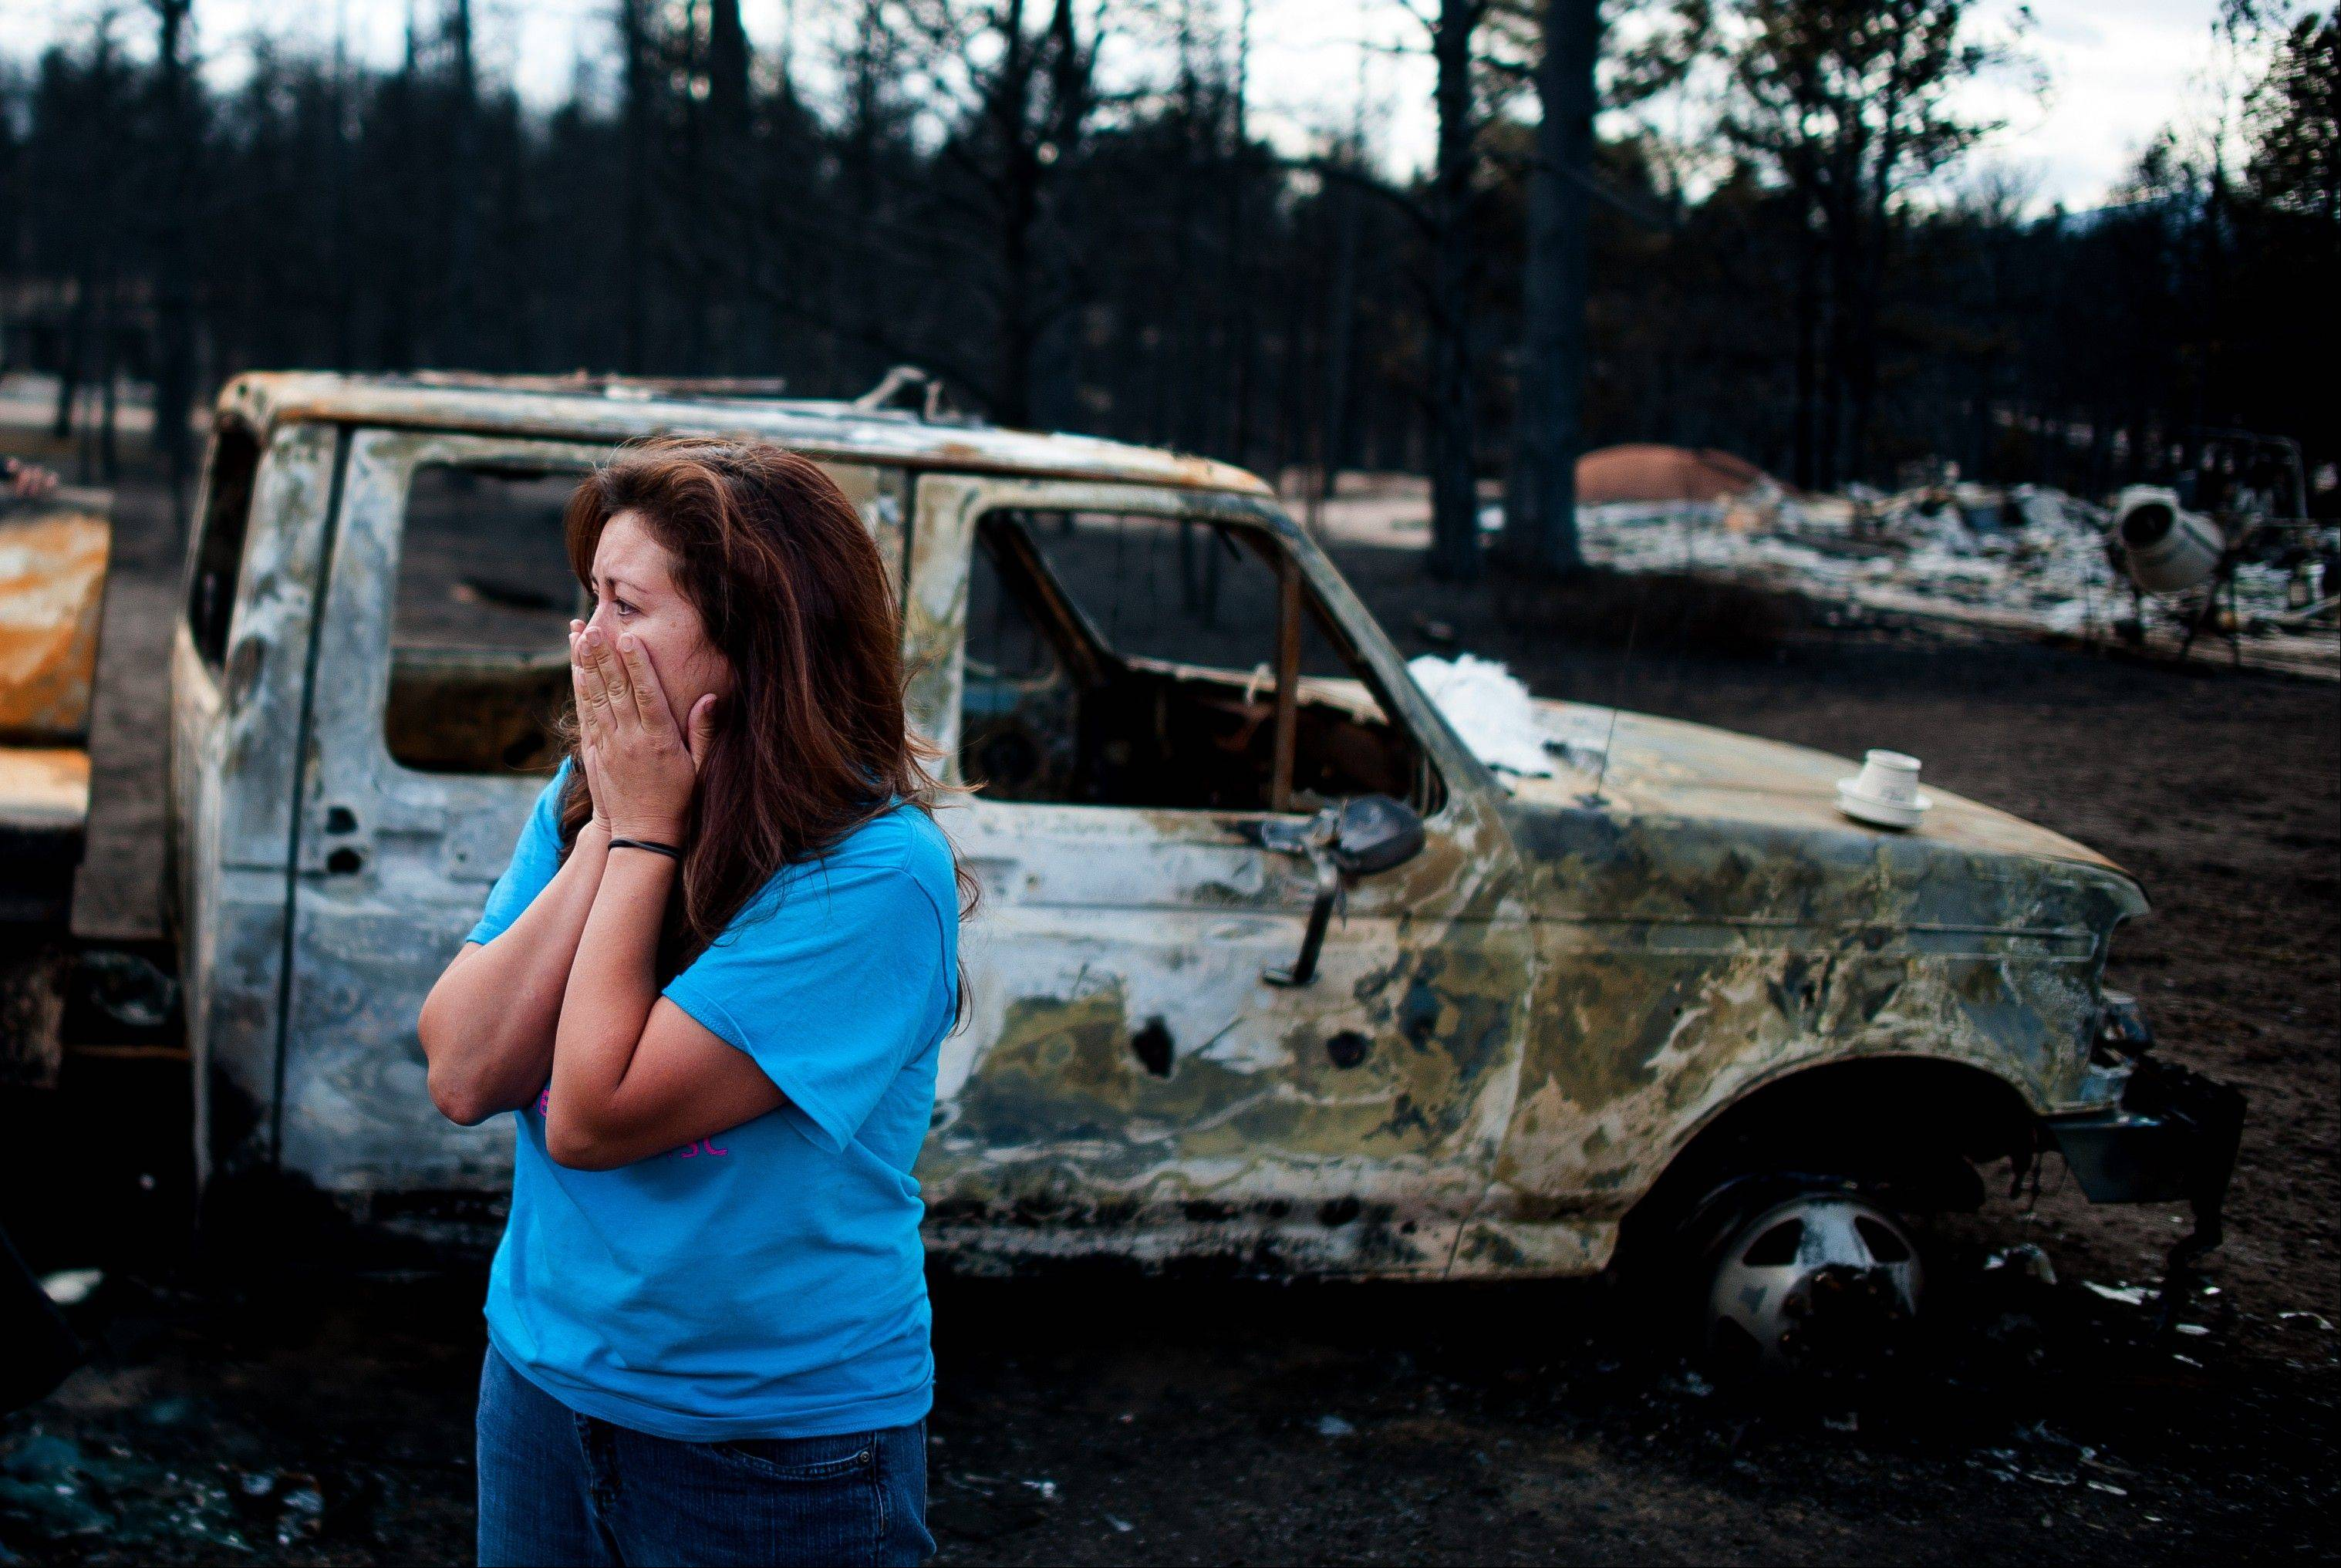 Bonnie Kruse reacts as she views her family�s property that was in the path of the Black Forest Fire, Tuesday, June 18, 2013, in Colorado Springs, Colo. Of the six homes that Kruse and her family have in Black Forest, all but one was destroyed. The Black Forest Fire, the most destructive wildfire in Colorado history, has destroyed 502 homes and charred more than 22 square miles. It was 85 percent contained Tuesday.